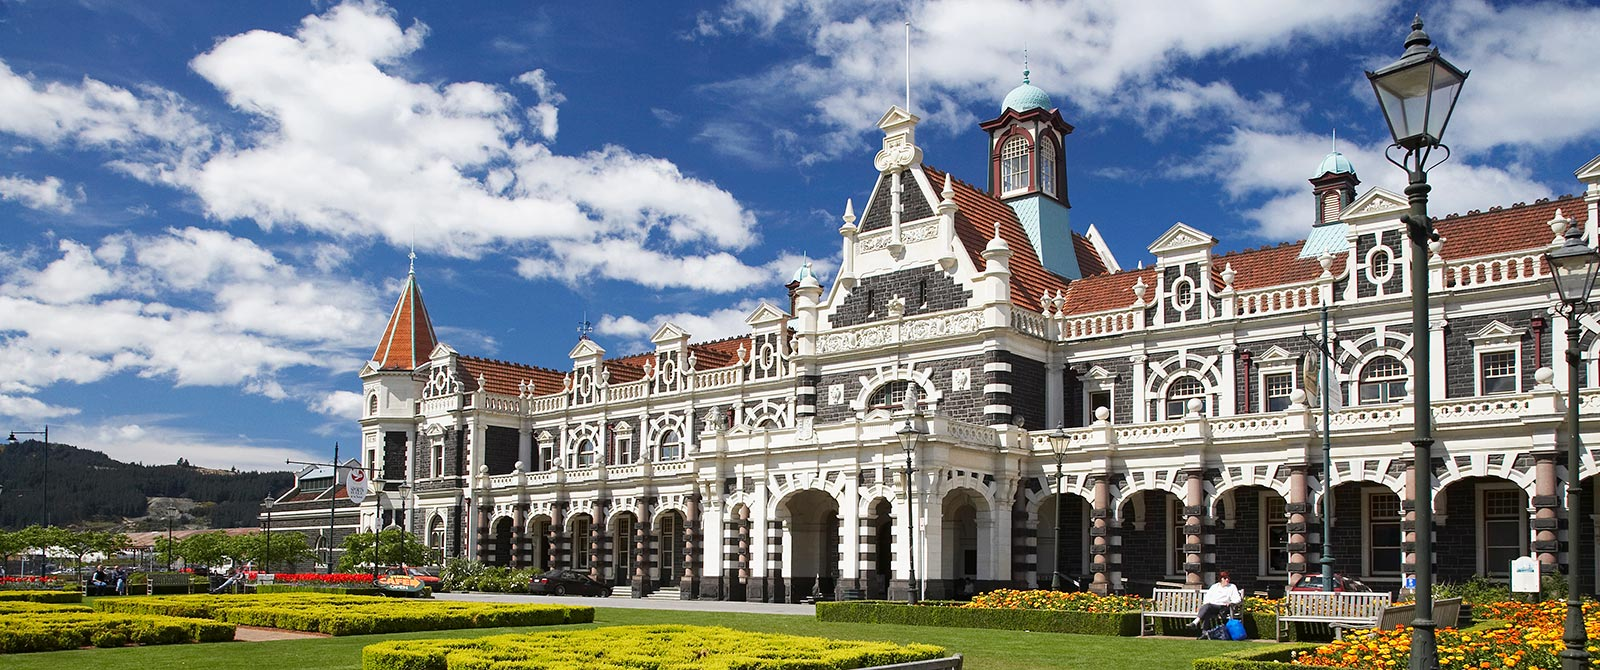 Historic Dunedin Rail Station - Book Your Trip to New Zealand - New Zealand Travel Agency